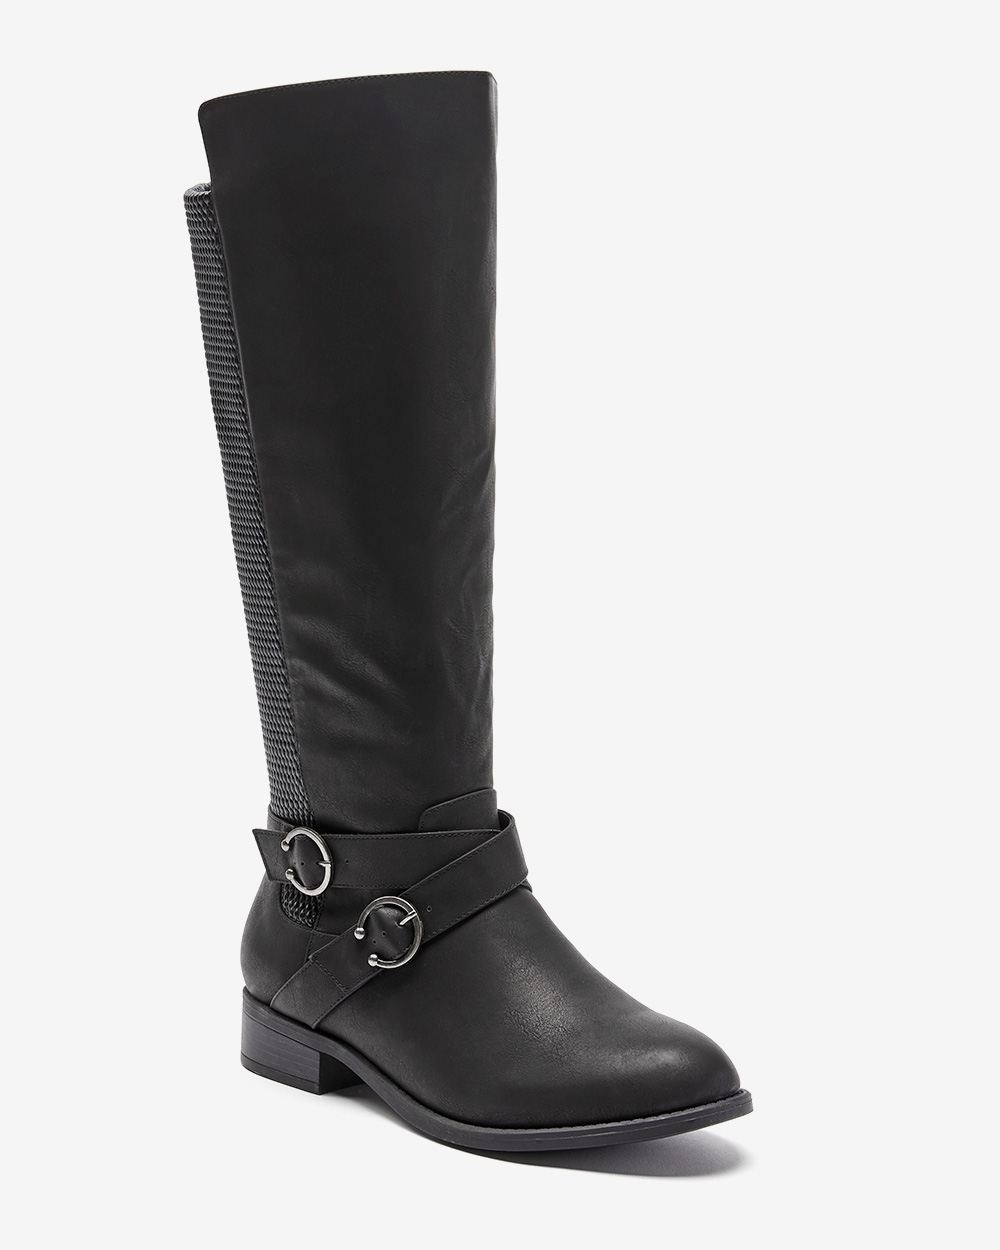 Buckle Boot With Elastic Back - Addition Elle ($119 CAD)